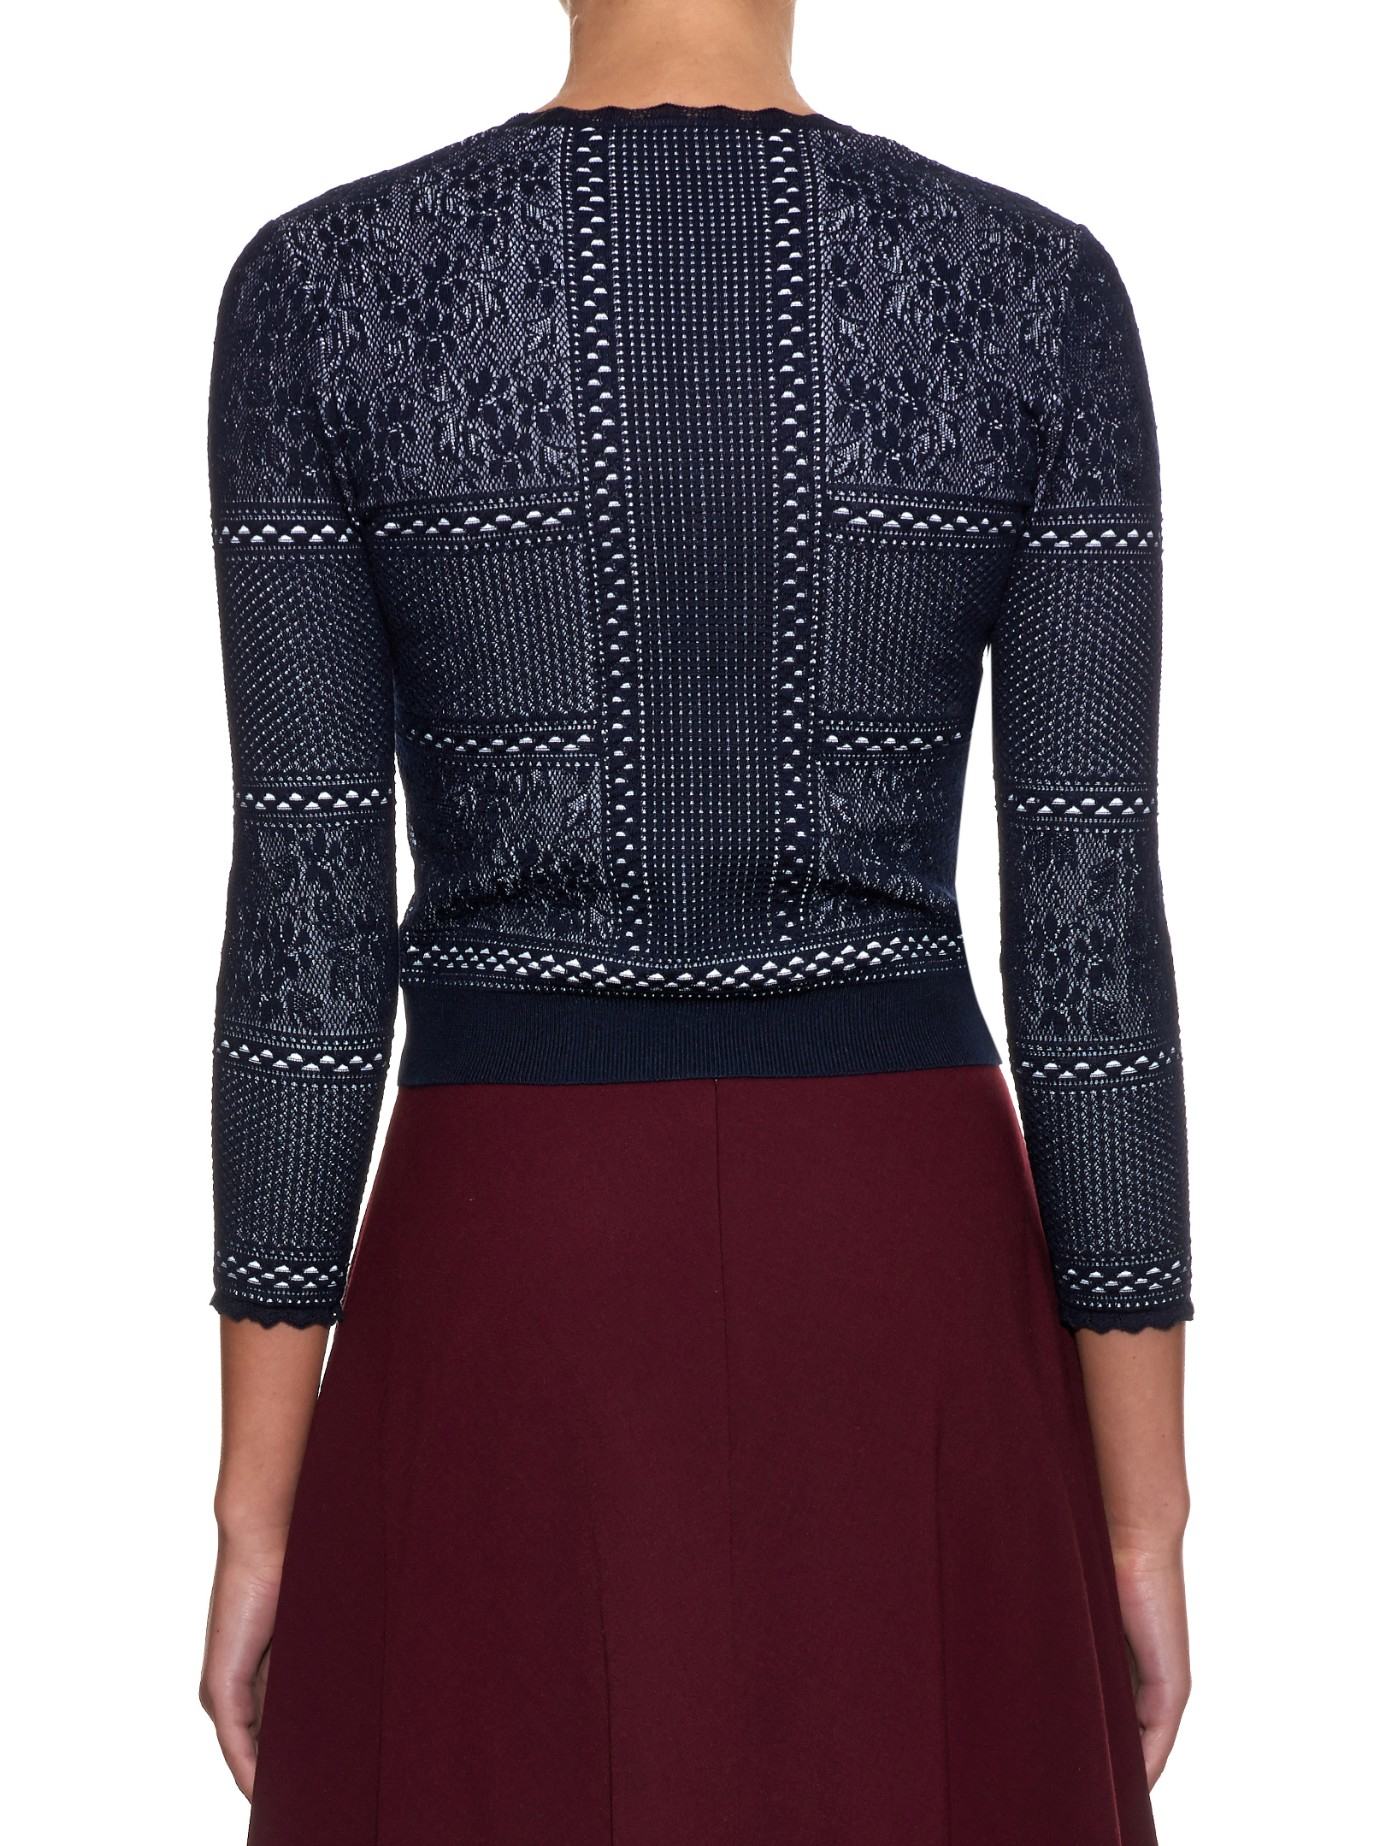 Alexander mcqueen Victorian-style Lace Cropped Cardigan in Blue | Lyst